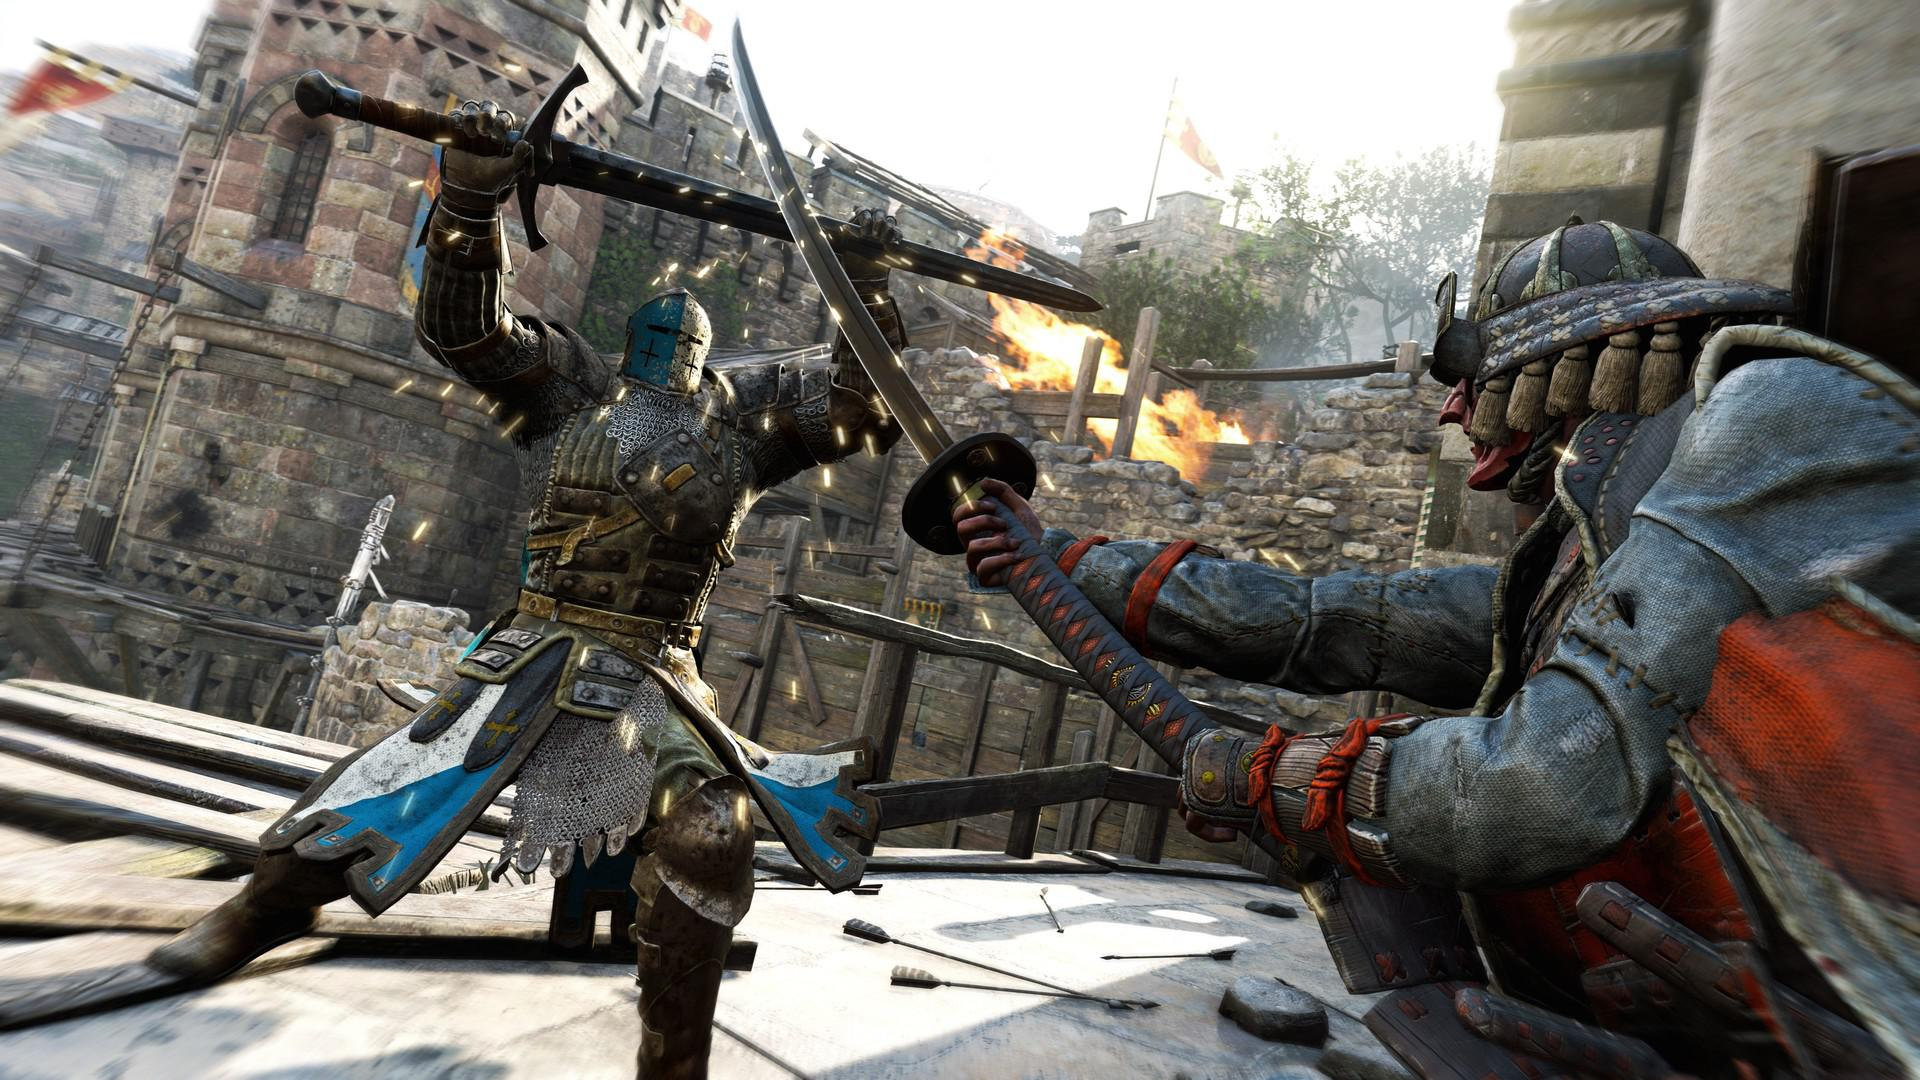 For Honor takes time to master – but when you do, it's a thrilling ride